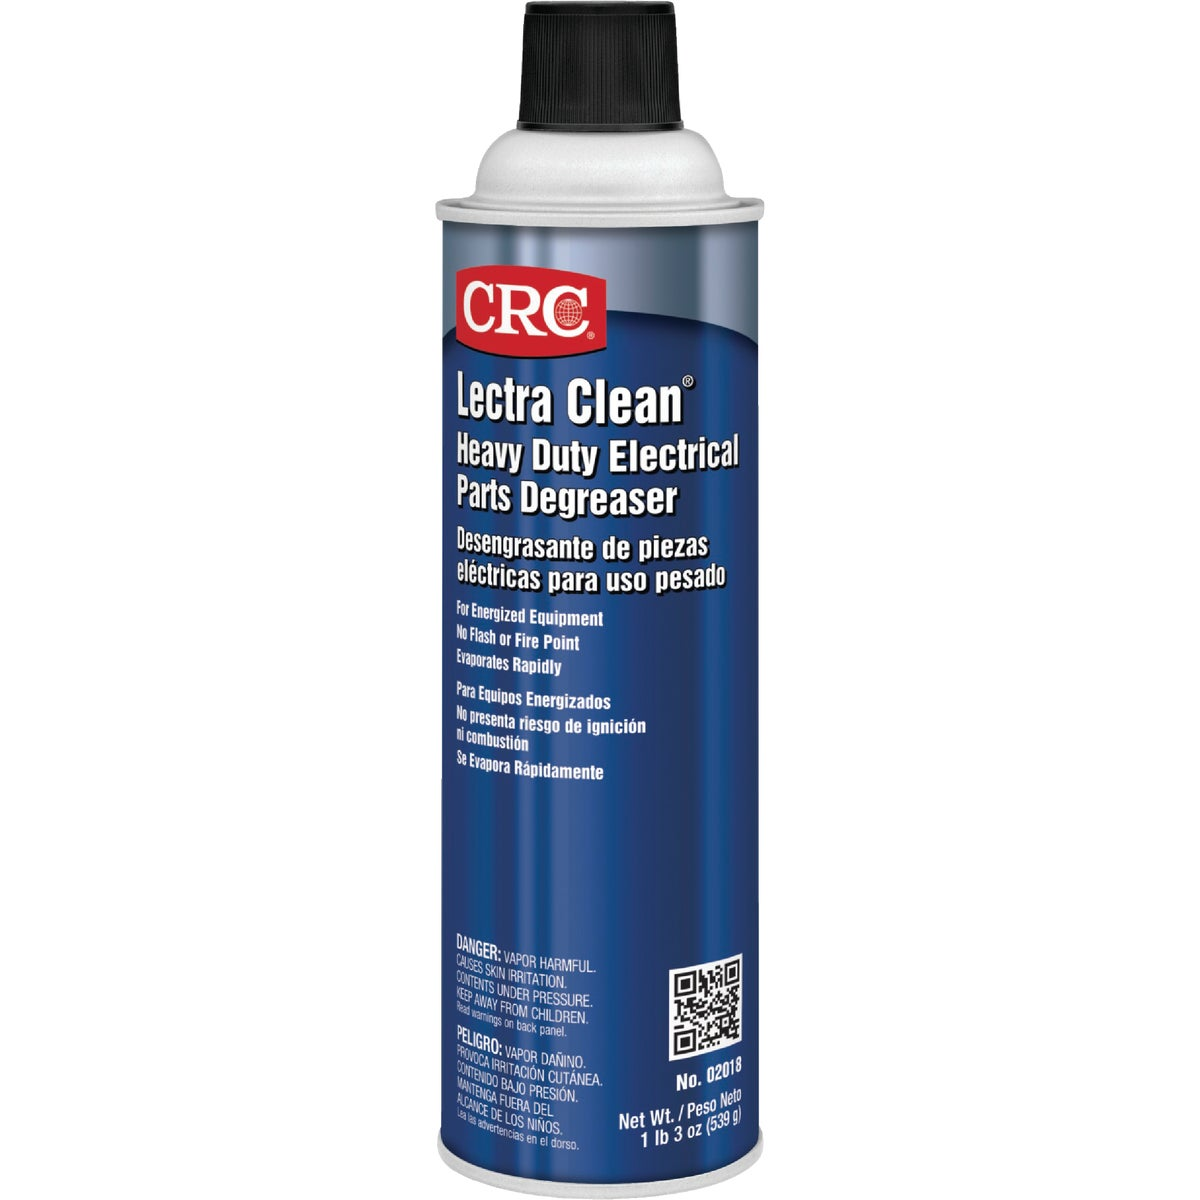 20OZ ELECTRICL DEGREASER - 02018 by Crc Industries Inc